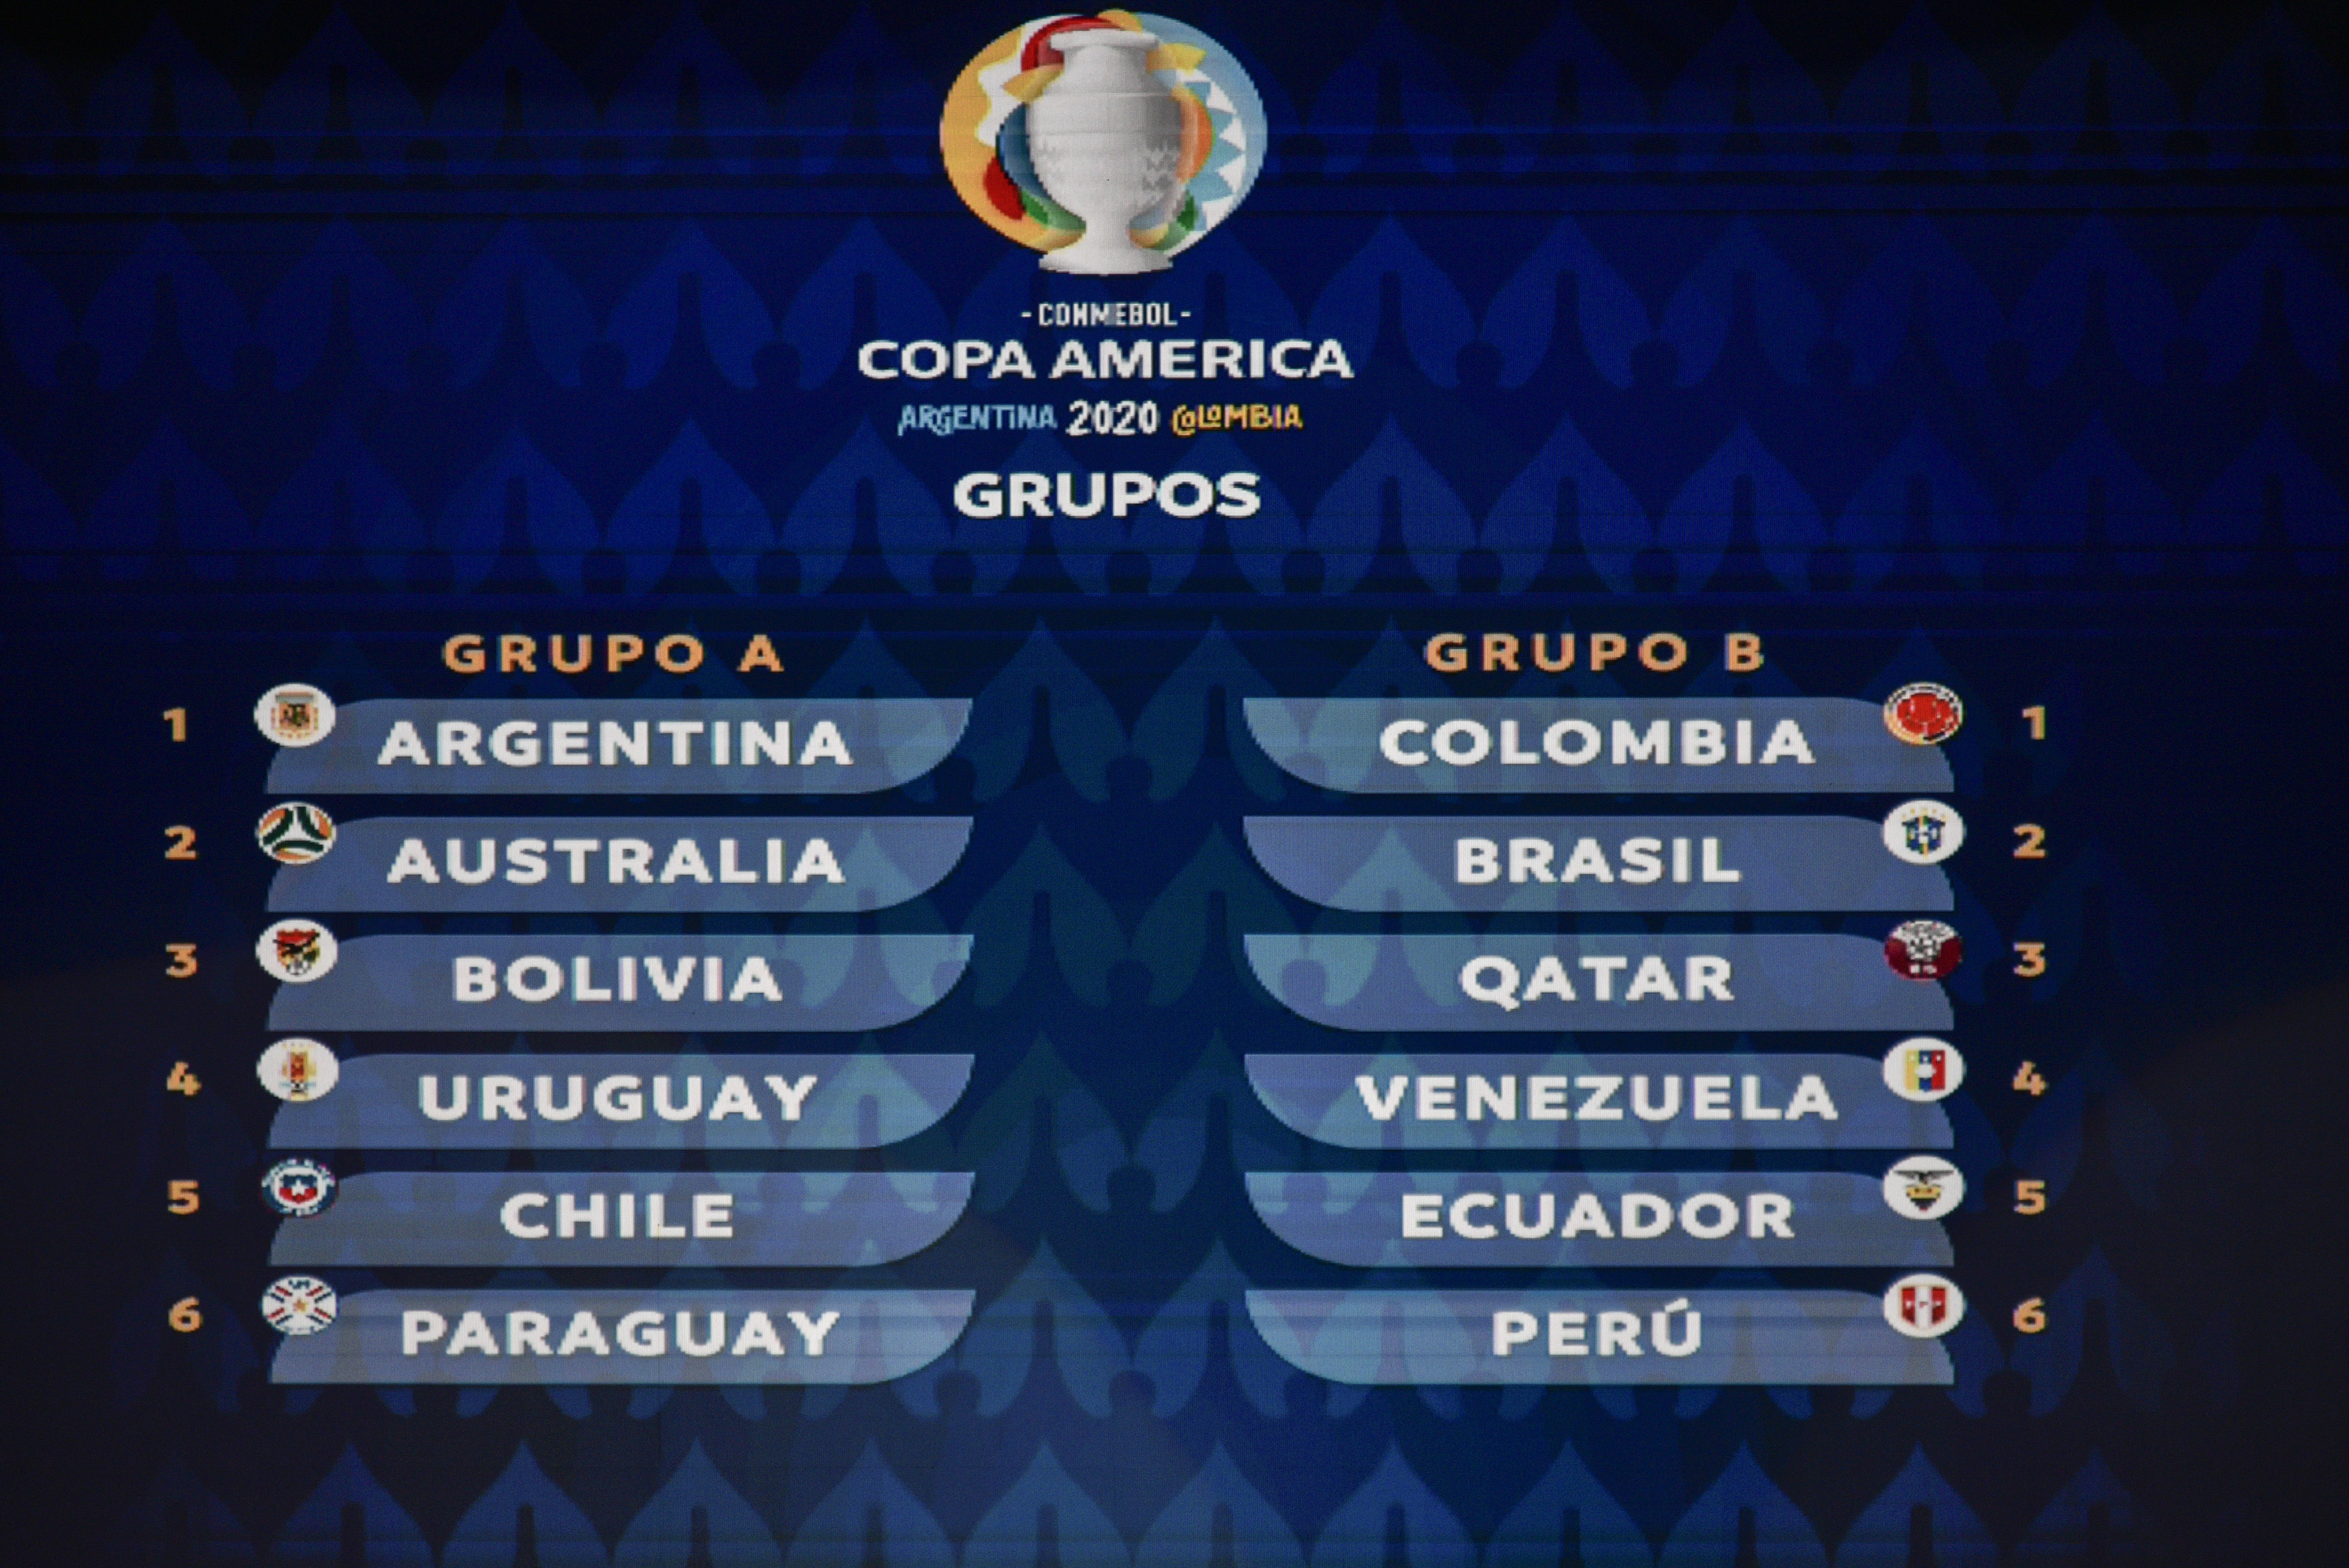 CARTAGENA, COLOMBIA - DECEMBER 03: Final groups for Copa America 2020 are displayed on the big screen during the draw for Copa America 2020 co-hosted by Argentina and Colombia at Centro de Convenciones de Cartagena de Indias on December 03, 2019 in Cartagena, Colombia.  (Photo by Guillermo Legaria/Getty Images)